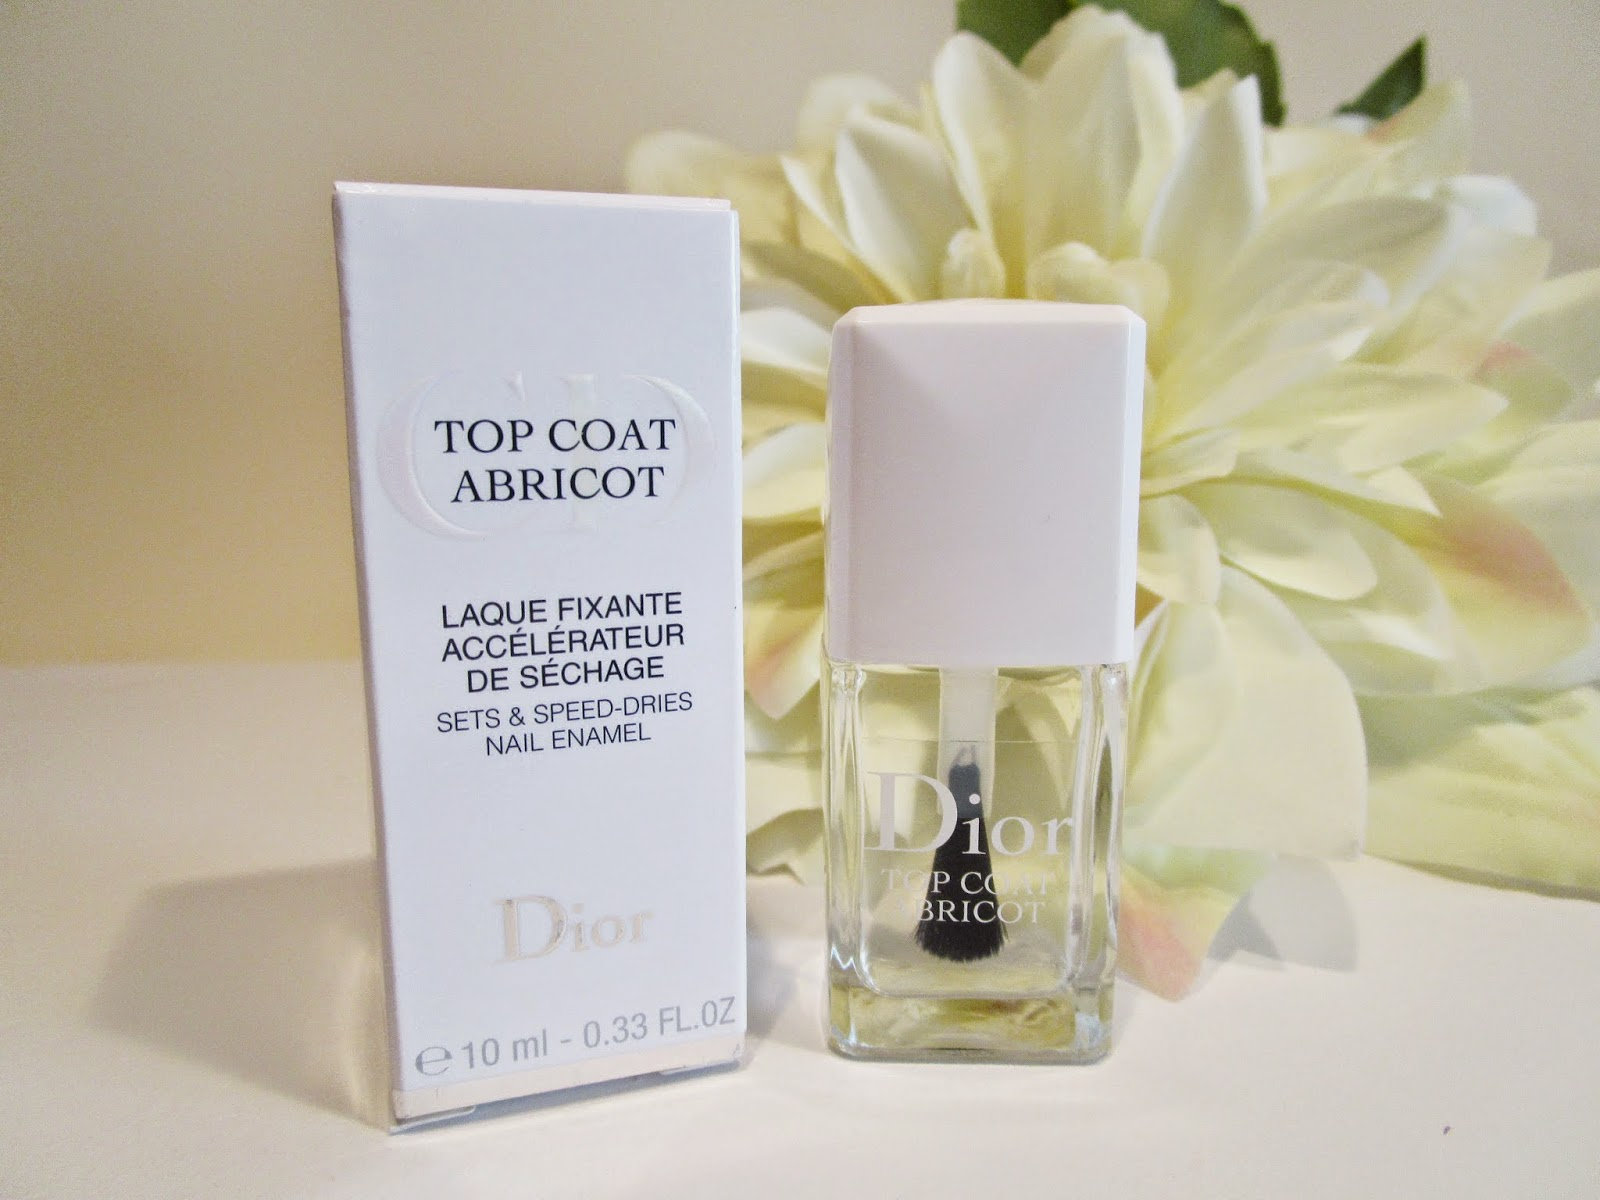 Top Coat Abricot de Christian Dior